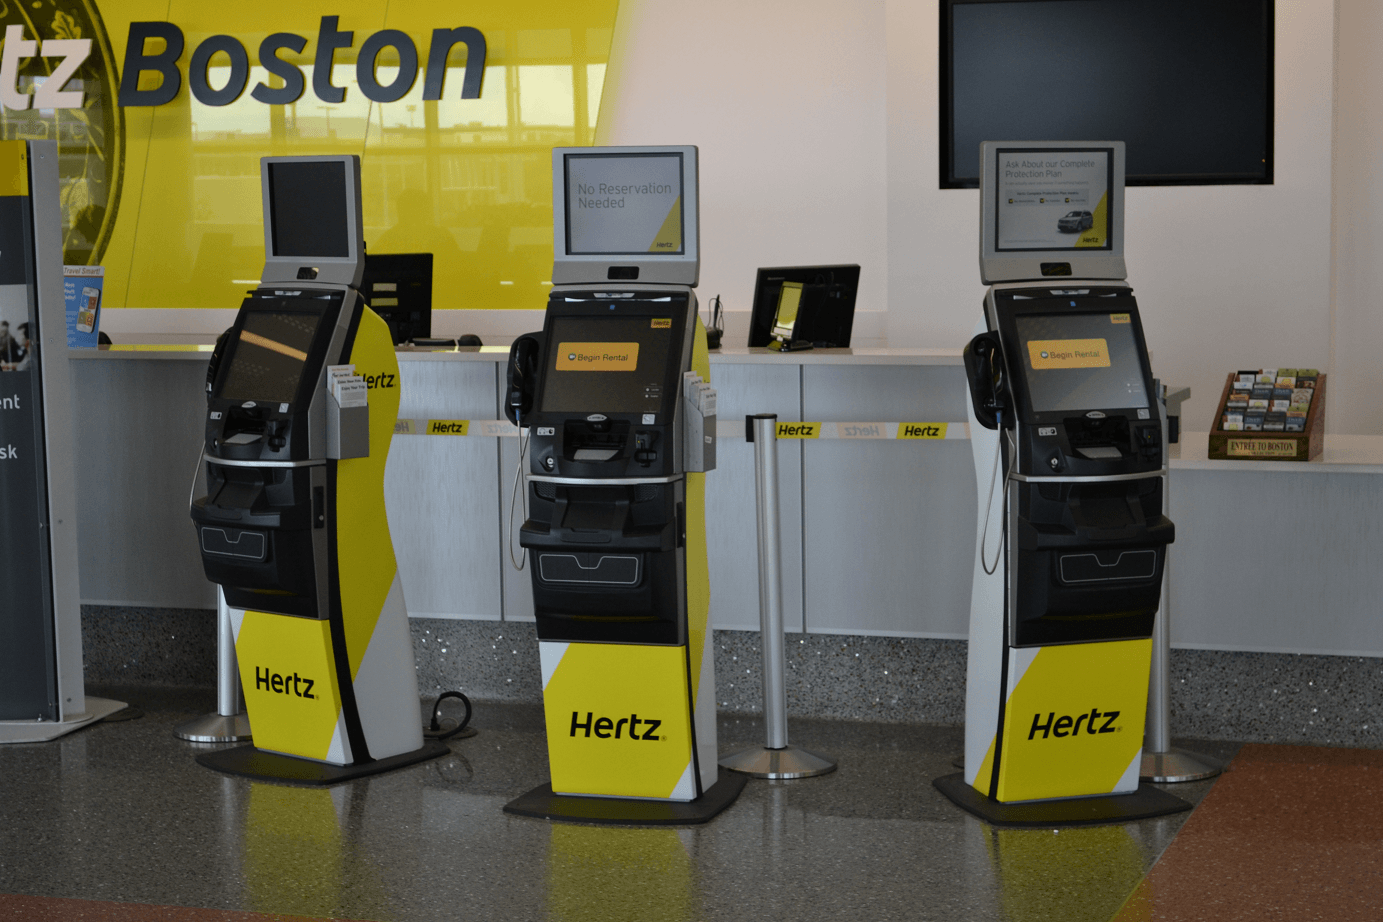 Payless Car Rental Boston Logan Intl Airport MA BOS